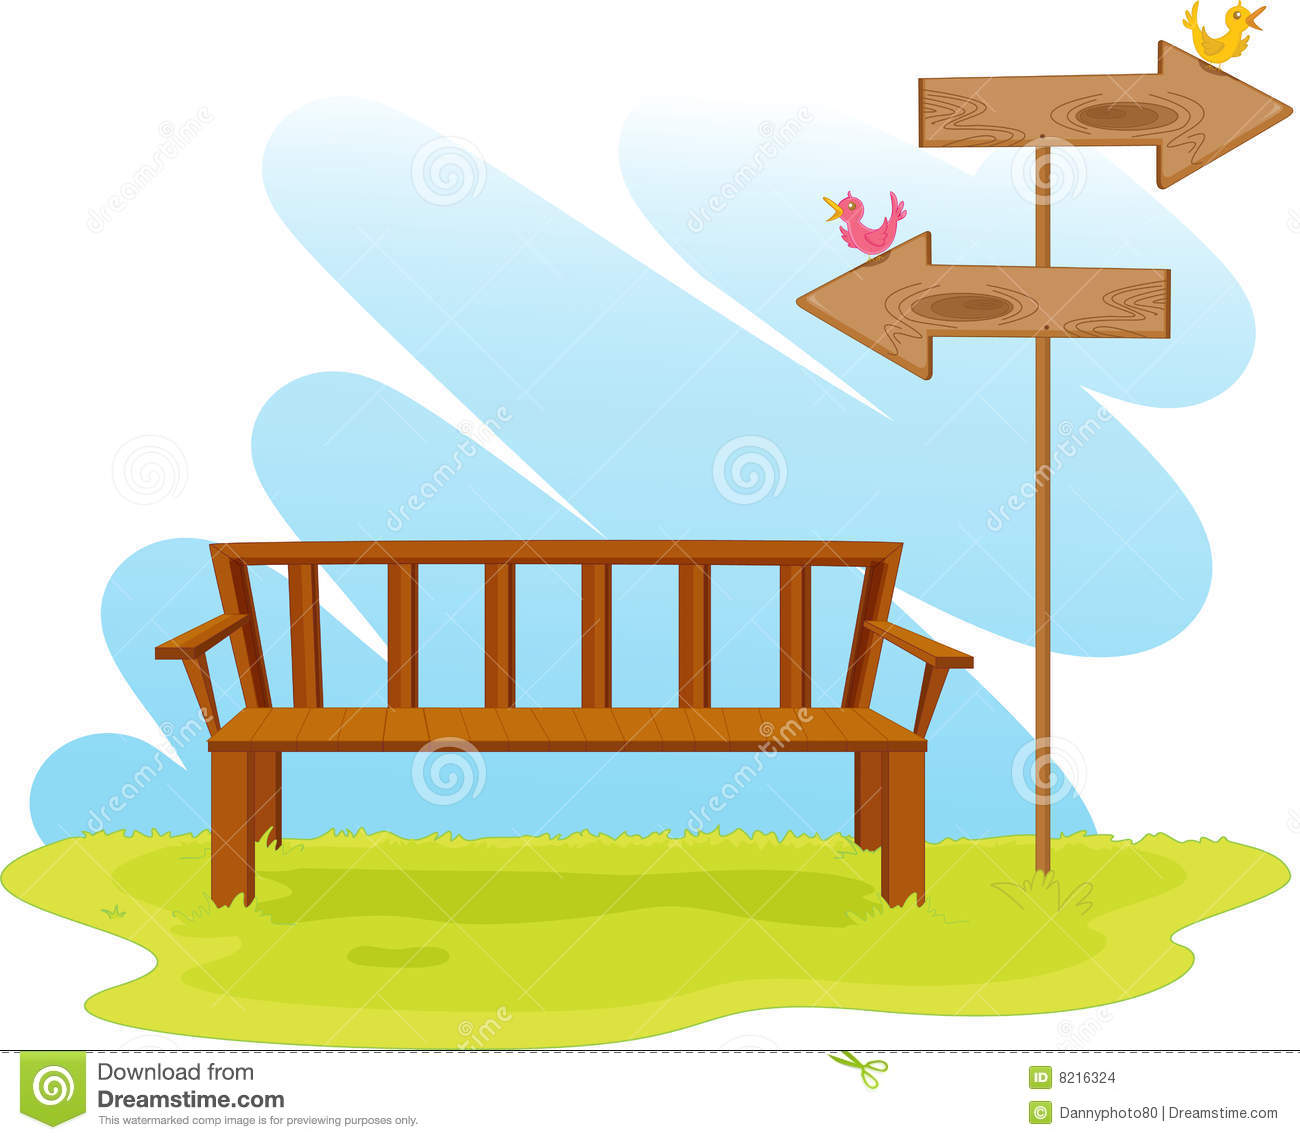 Park Bench Stock Illustration Illustration Of Colorful 8216324